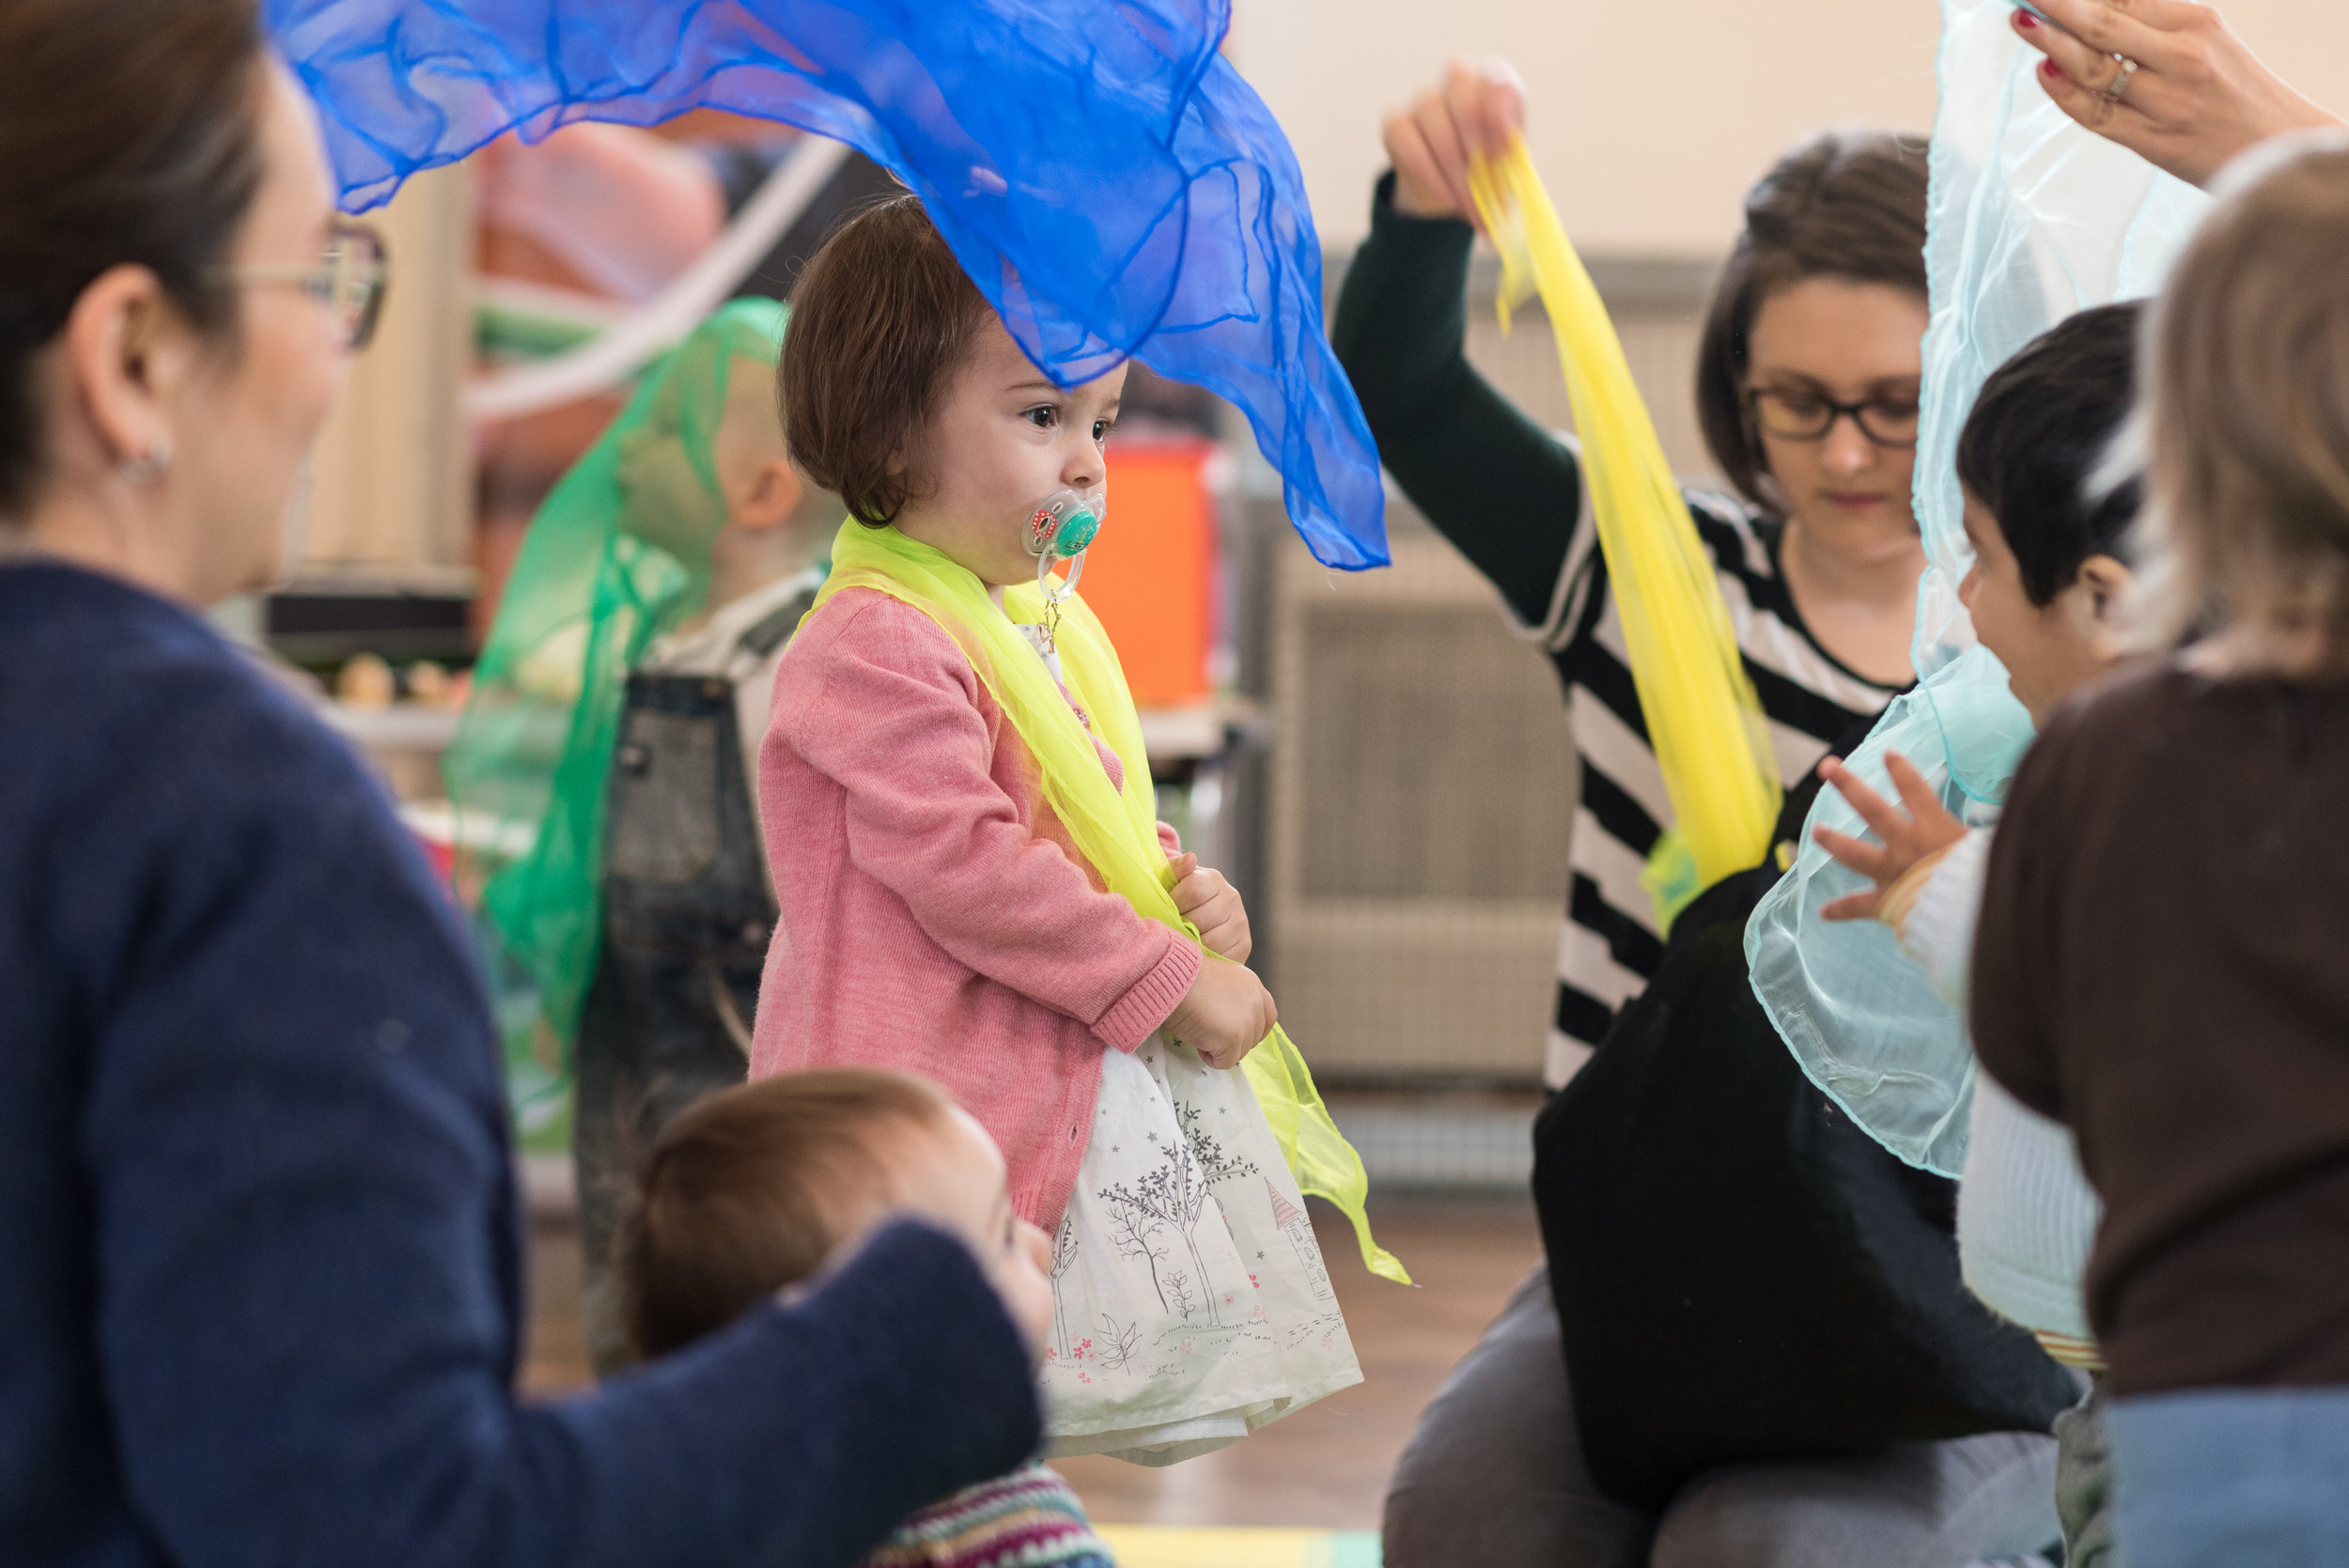 Family Music, Cradlesongs & events - Ages 0-5